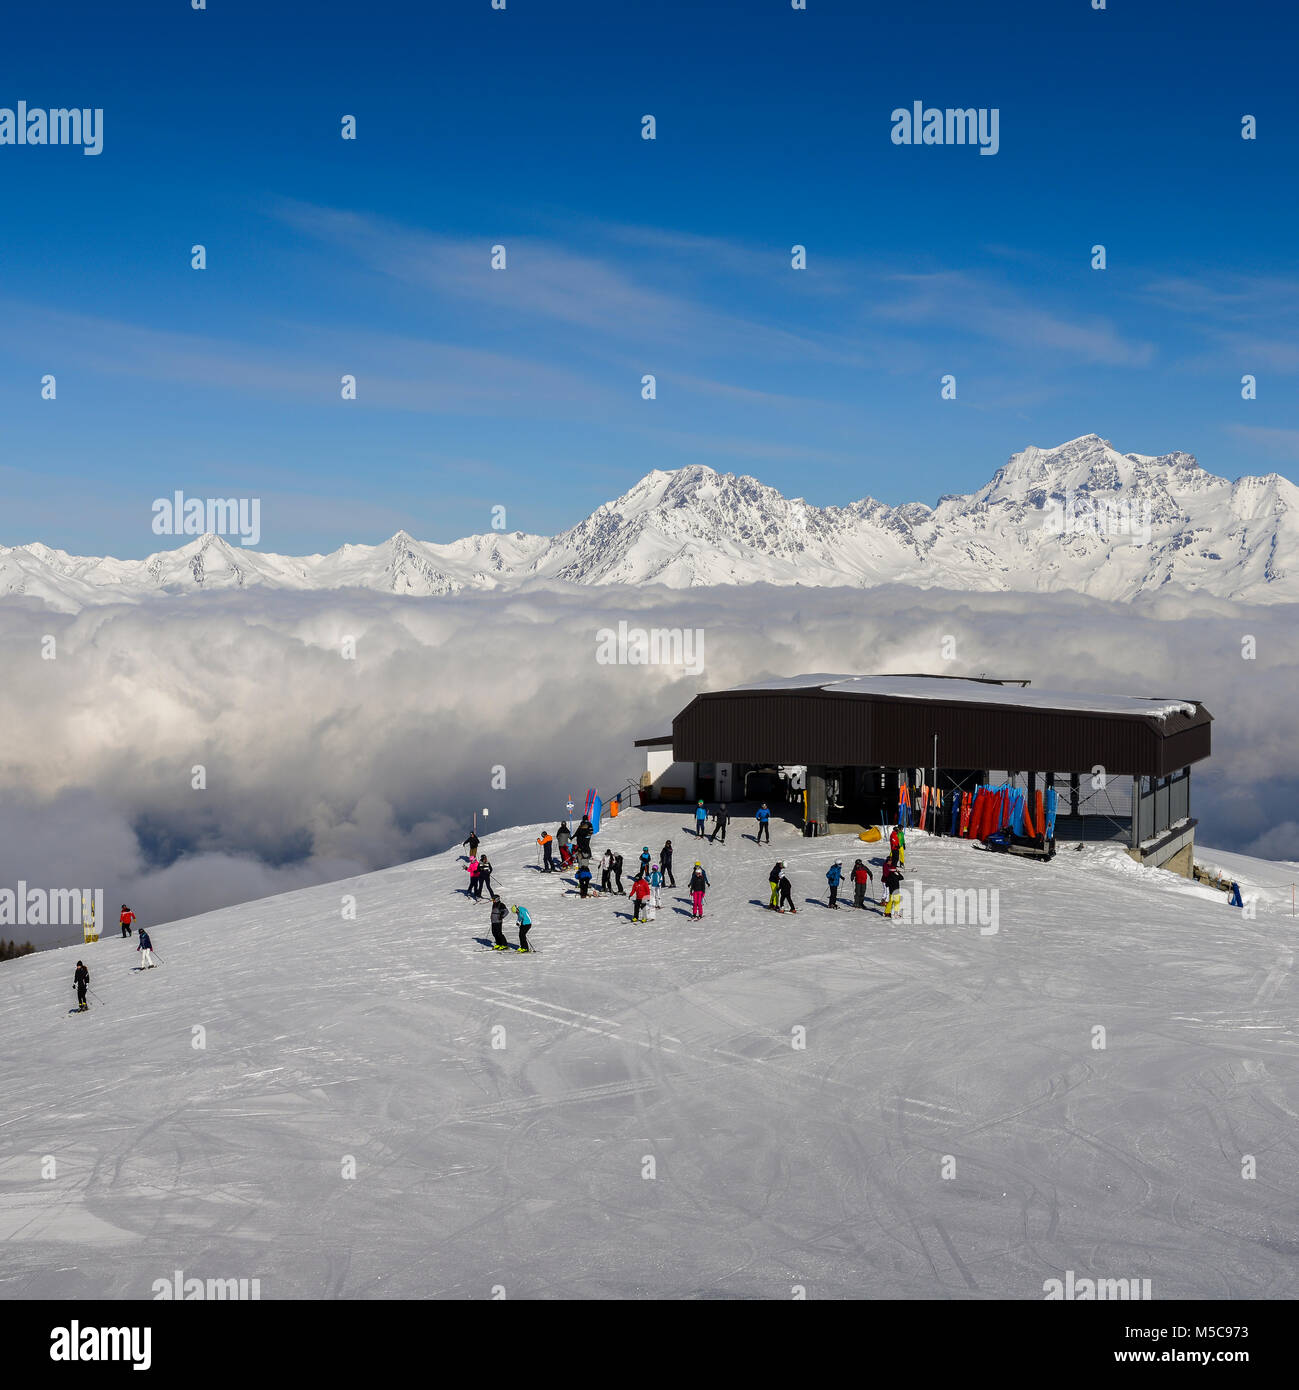 Pila, Aosta, Italy - Feb 19, 2018: Chairlift at Italian ski area of Pila on freshly groomed snow covered Alps above Stock Photo